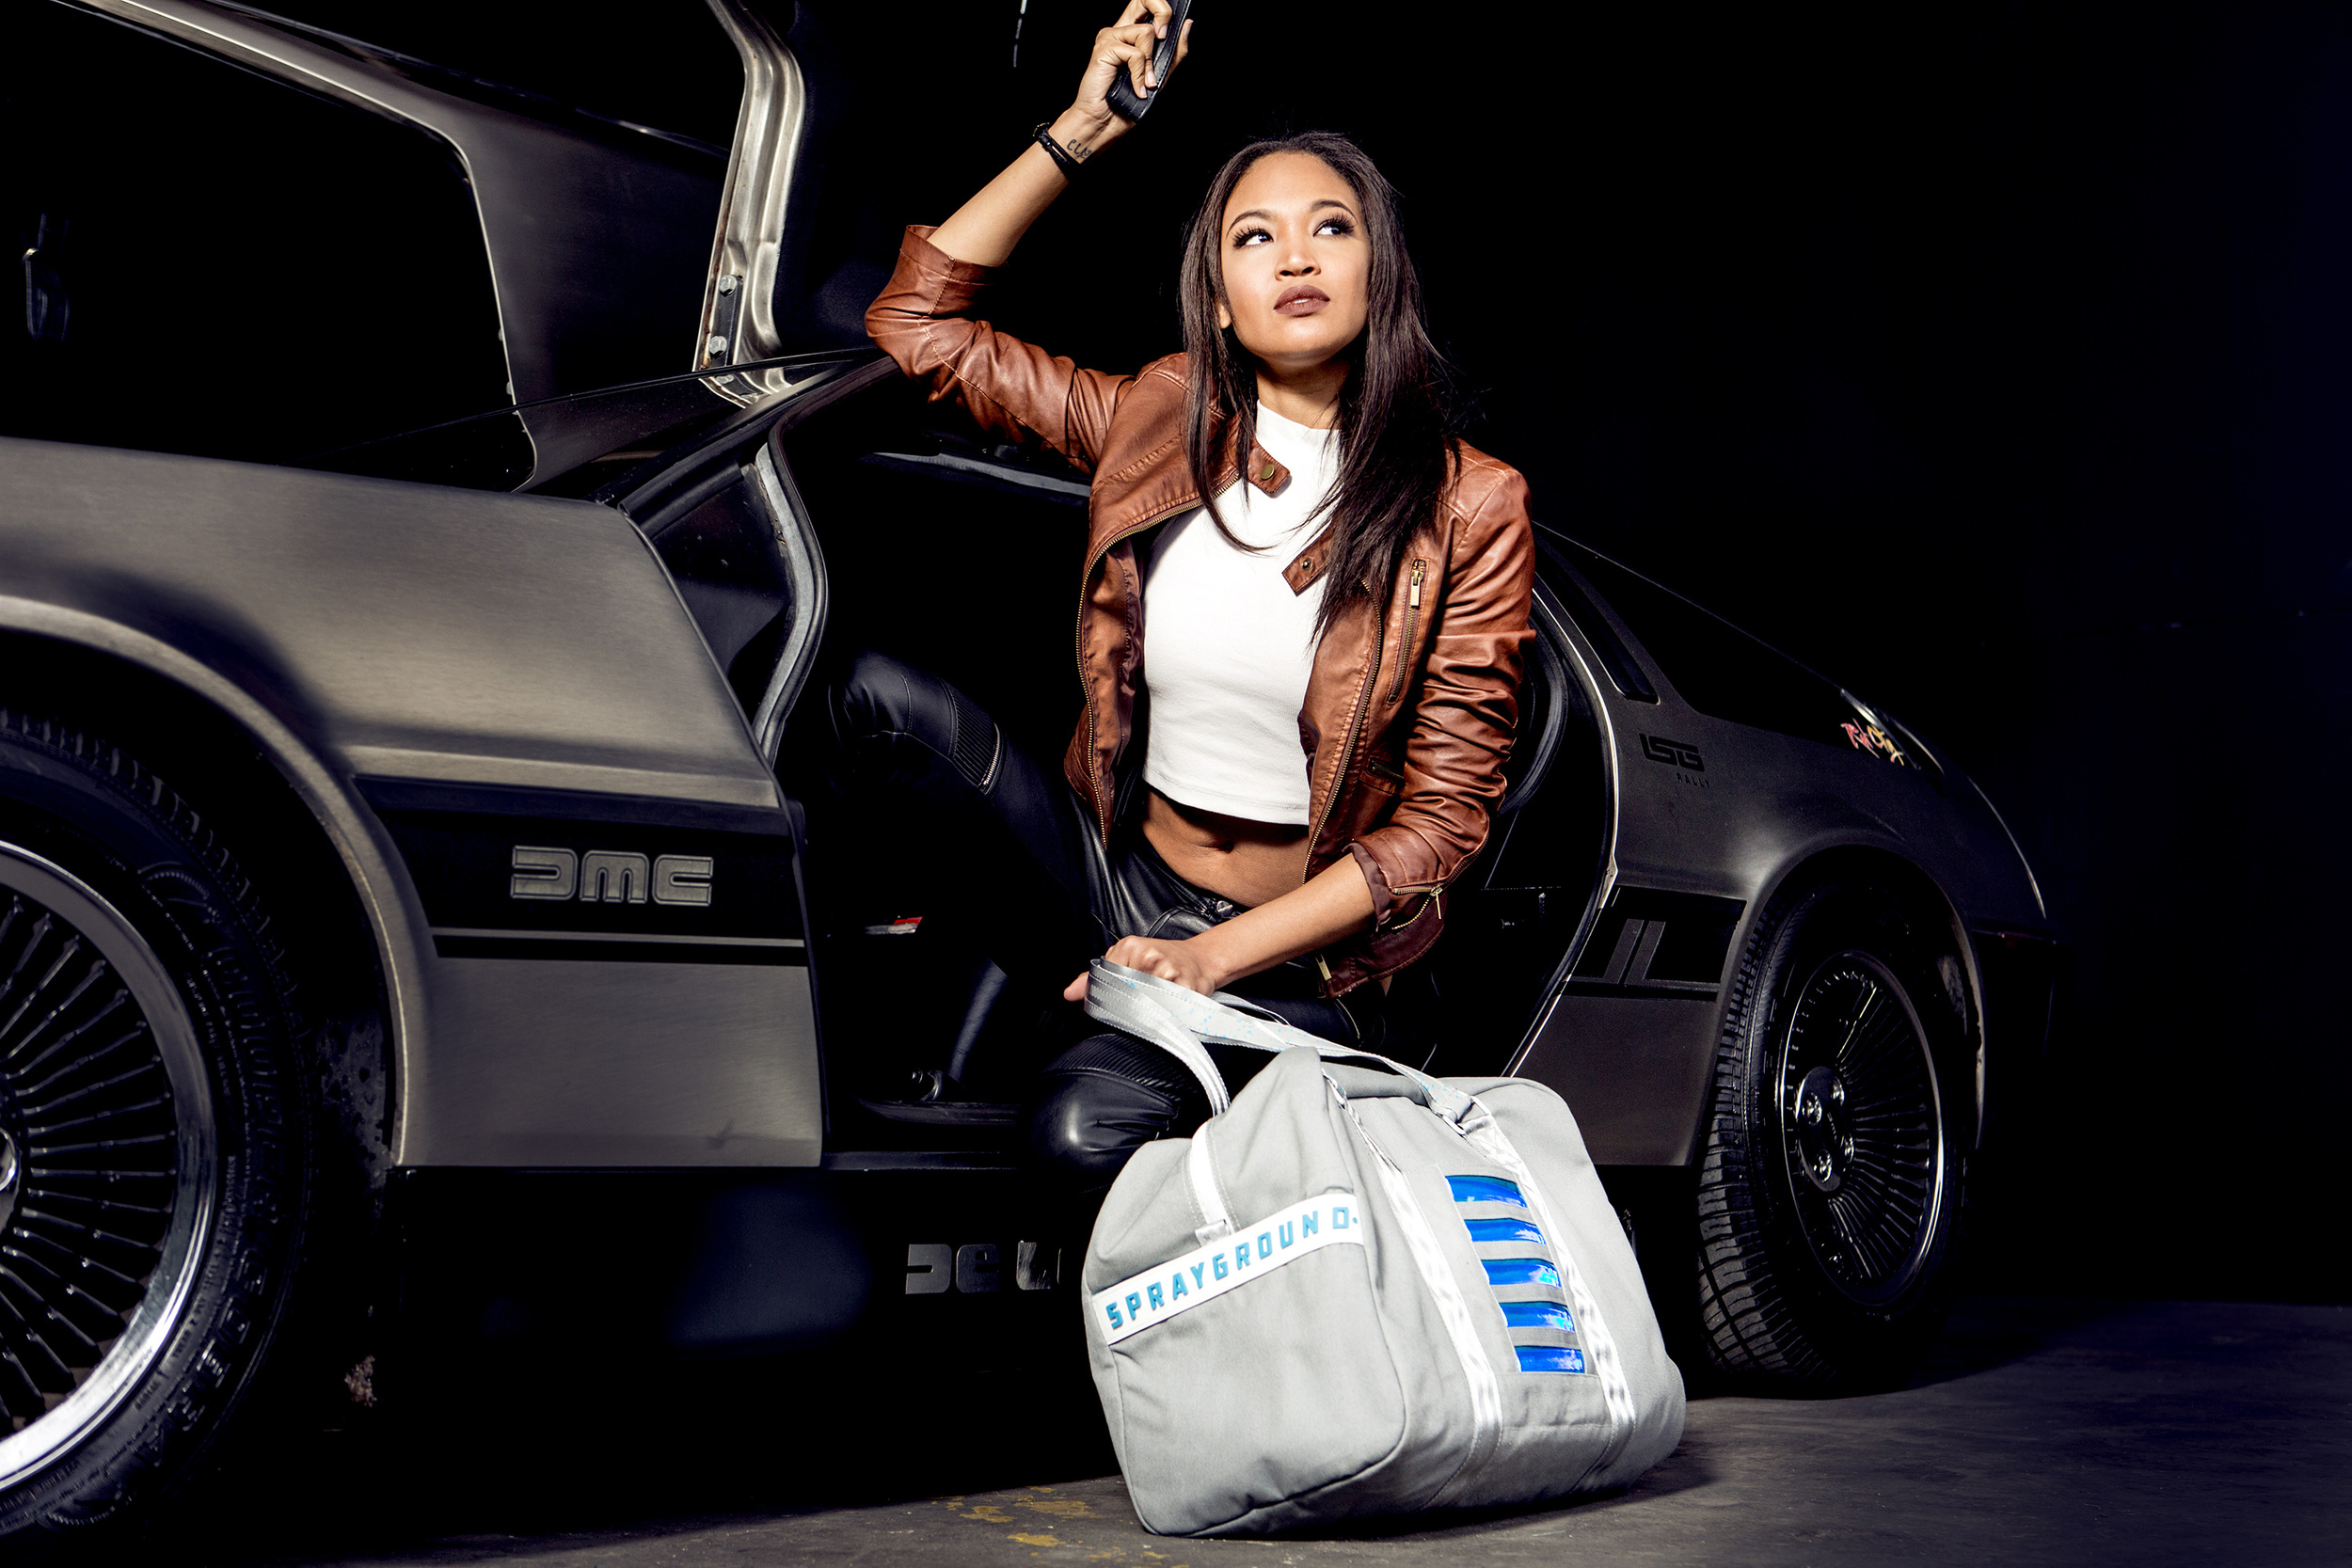 sprayground high snobiety neka stephens justfeng photography editorial street dreams back to the future